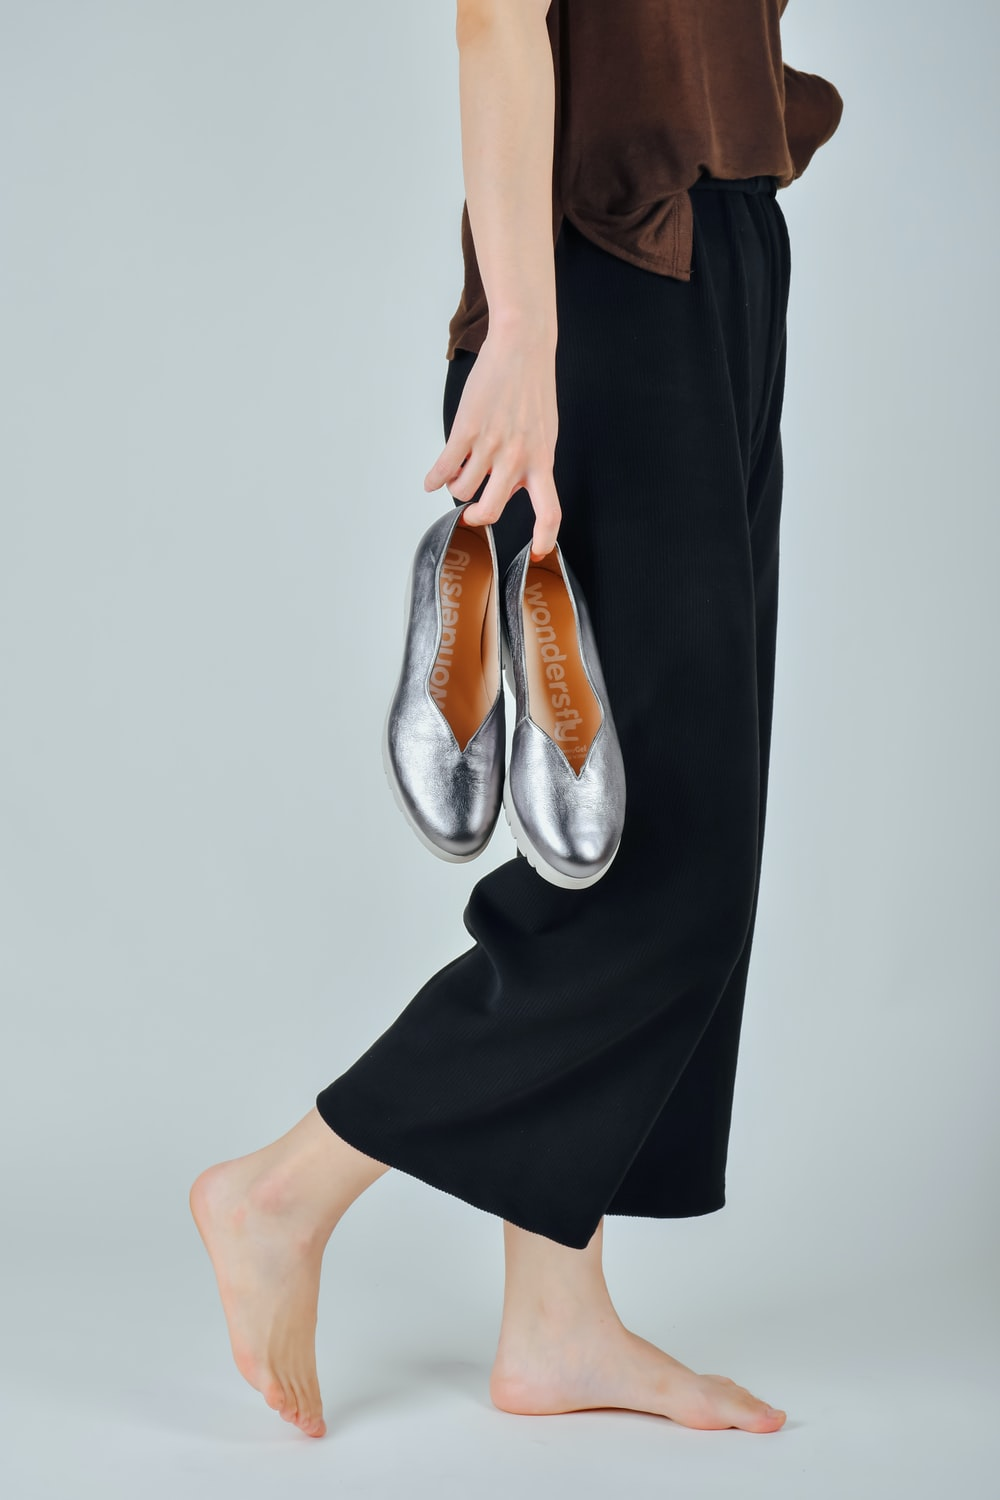 woman in black dress wearing brown leather flats